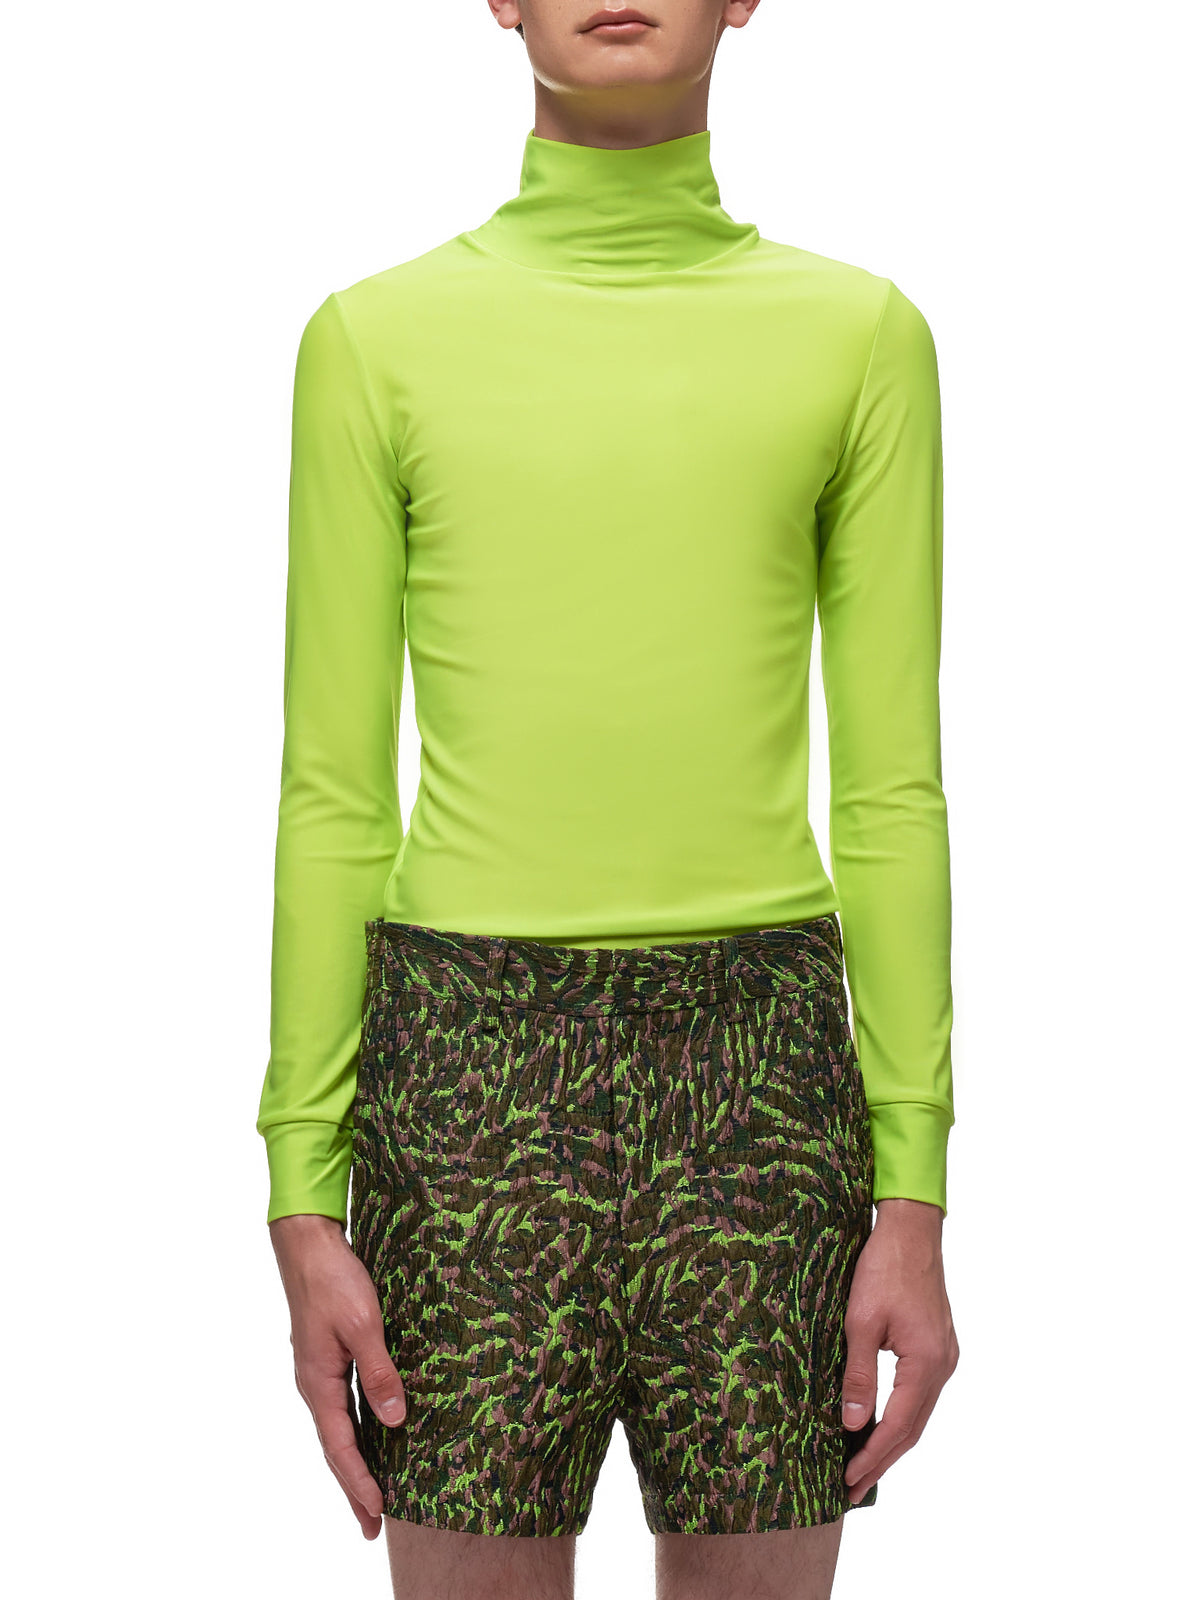 Highlighter Turtleneck (006-06-SUNNY-LIGHT-GREEN)